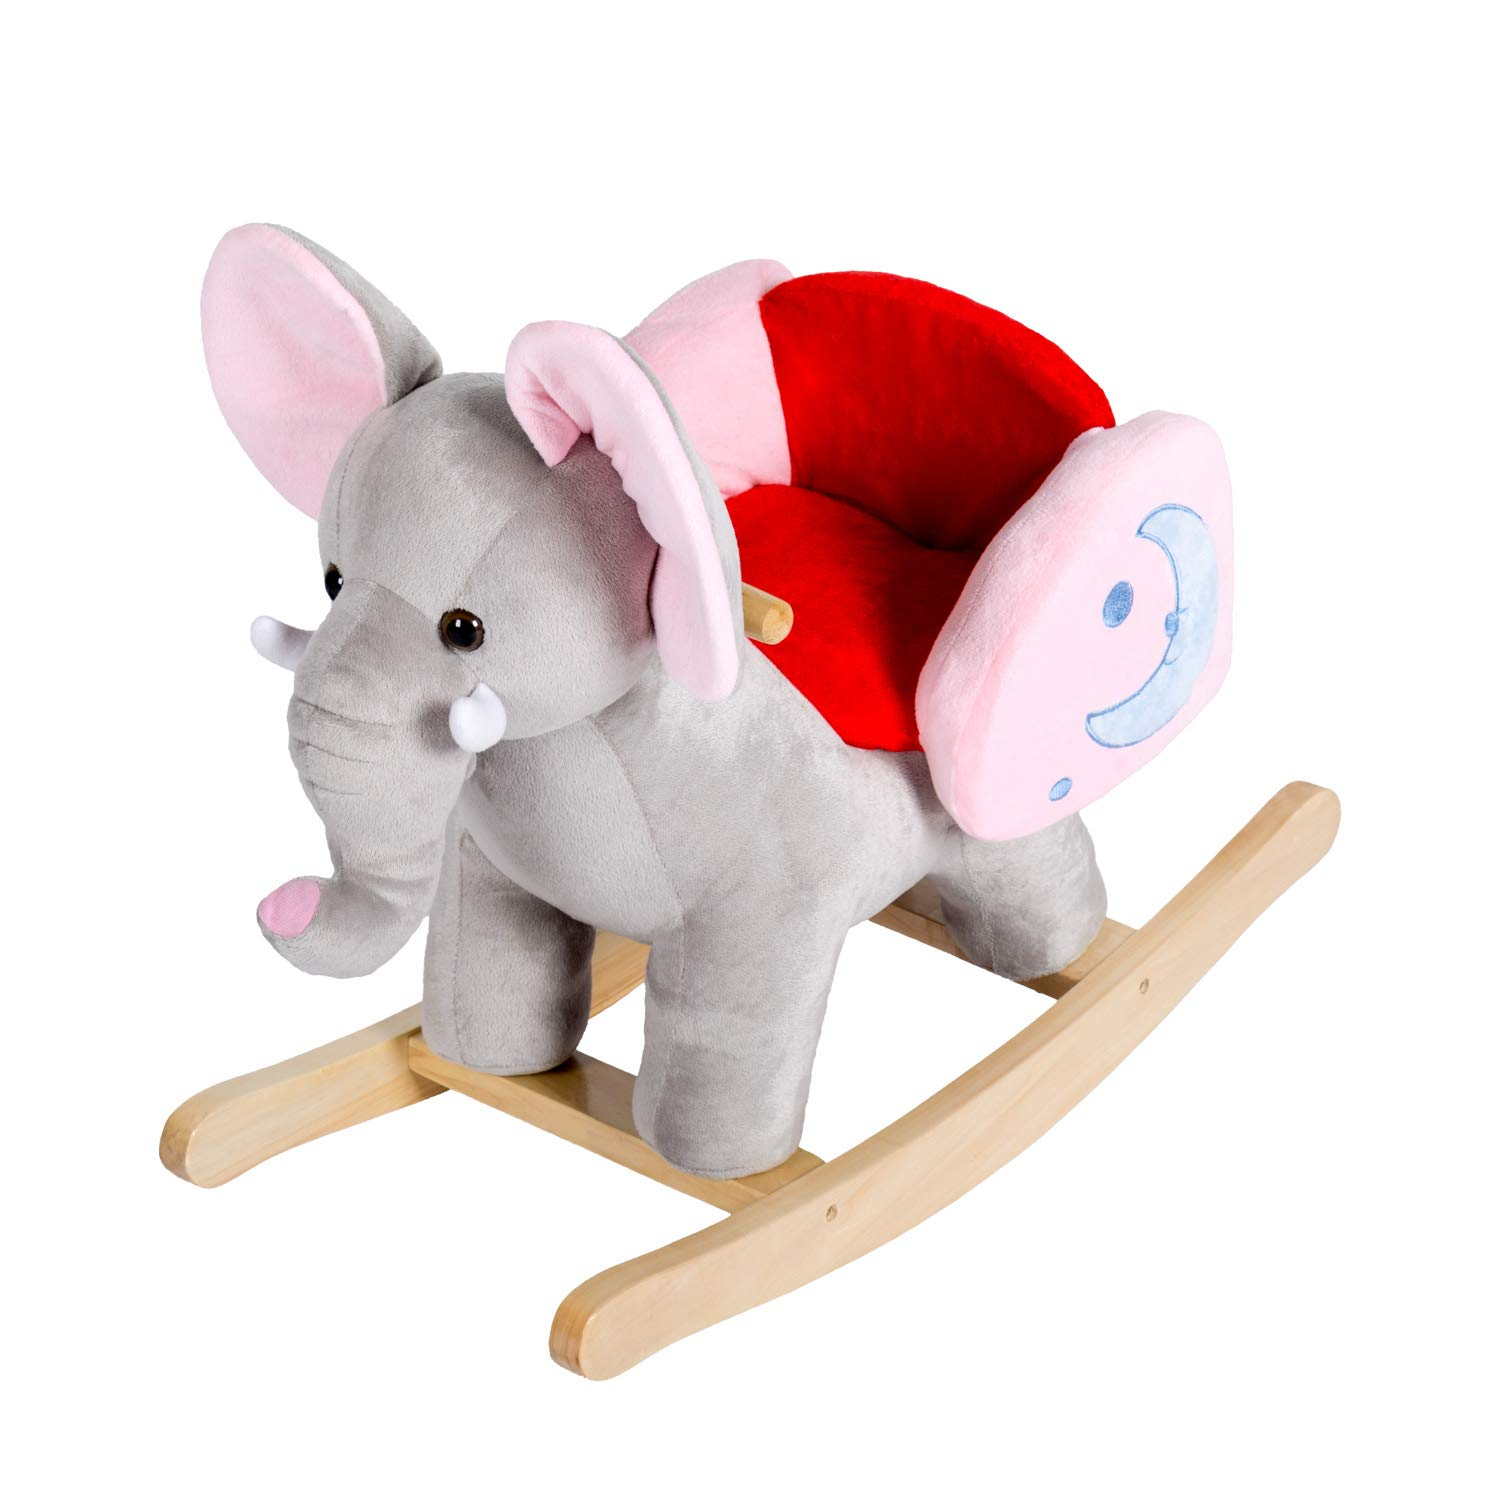 Kinbor Rocking Horse Plush Baby Kids Stuffed Animal Rocker Toy Wooden Rocking Horse Elephant Rocker Children S Day Birthday Gift W 32 Nursery Rhymes